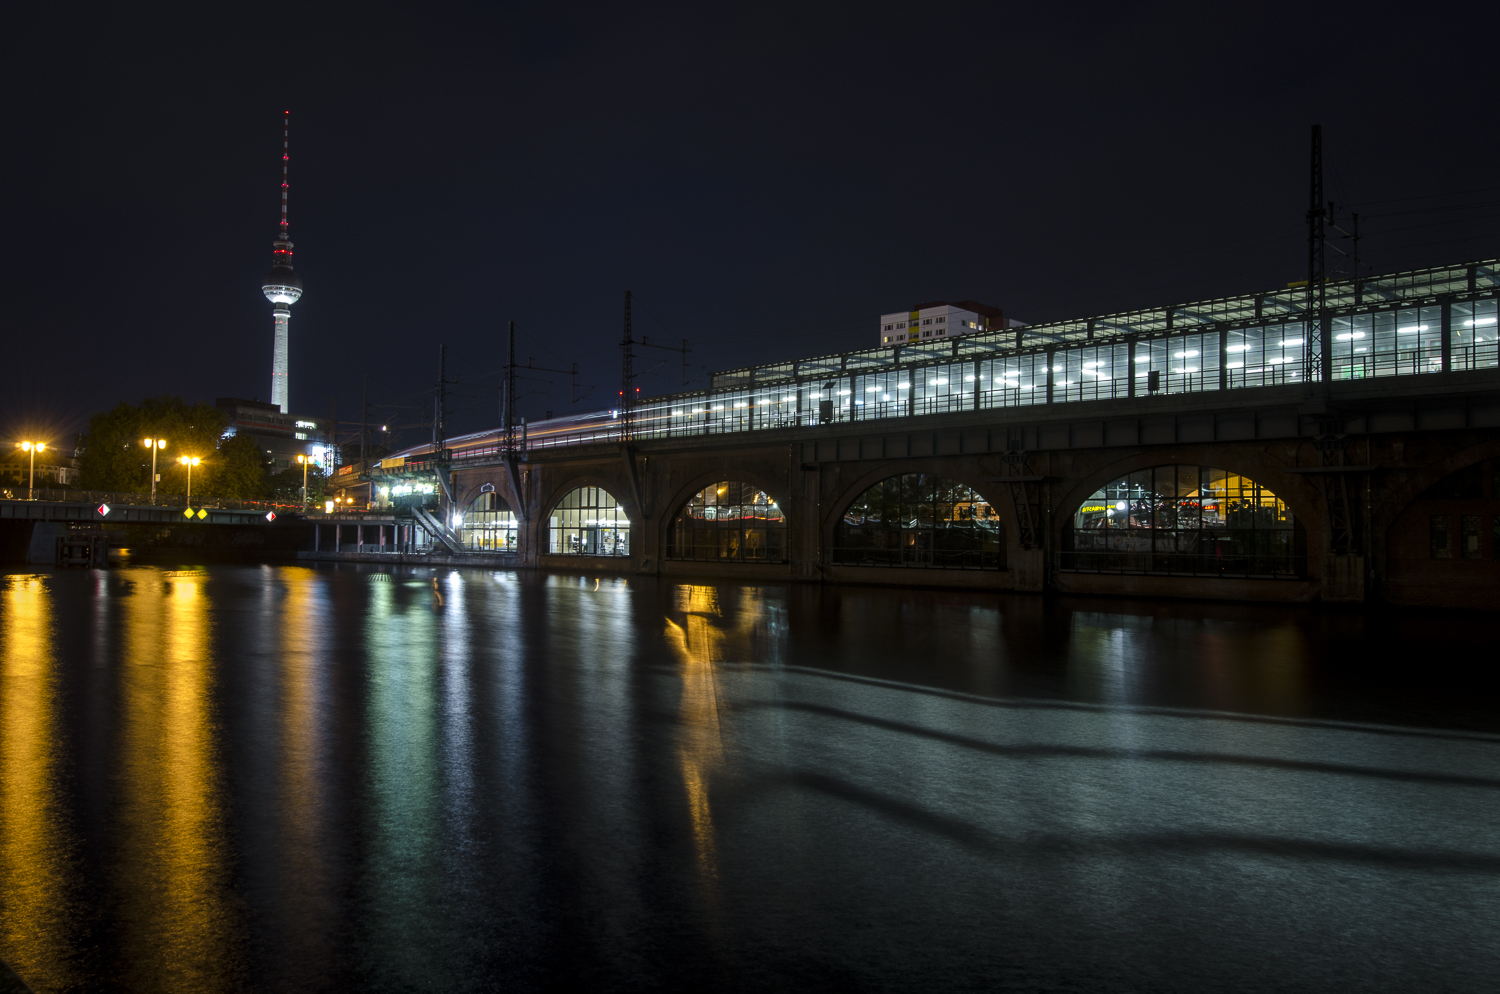 berlin-night-001.jpg